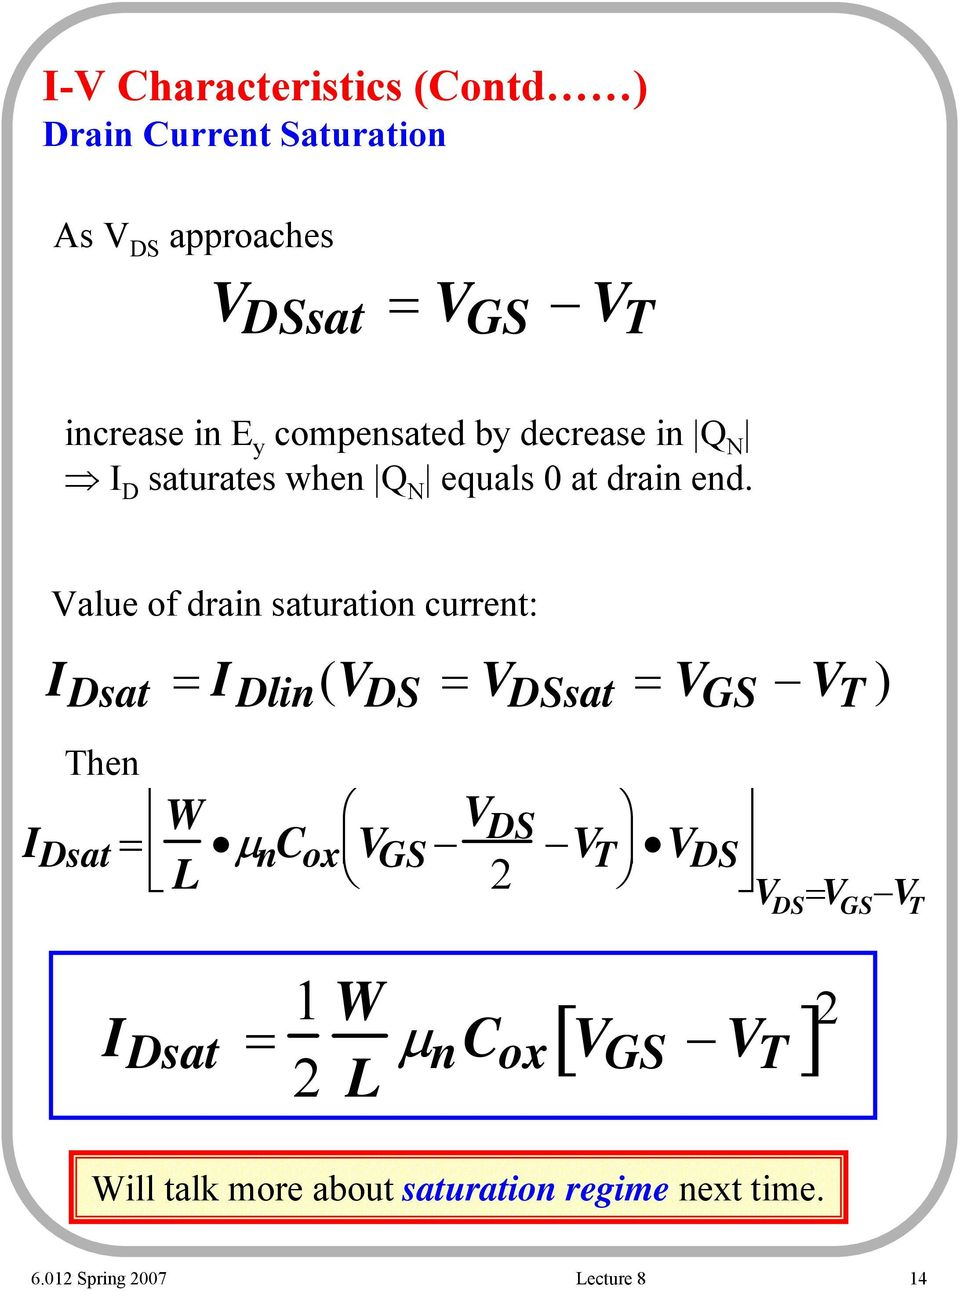 Lecture 8 Mosfeti Mosfet I V Characteristics Pdf Mosfetcircuitsymbols Value Of Drain Saturation Current Dsat Dlin Ds